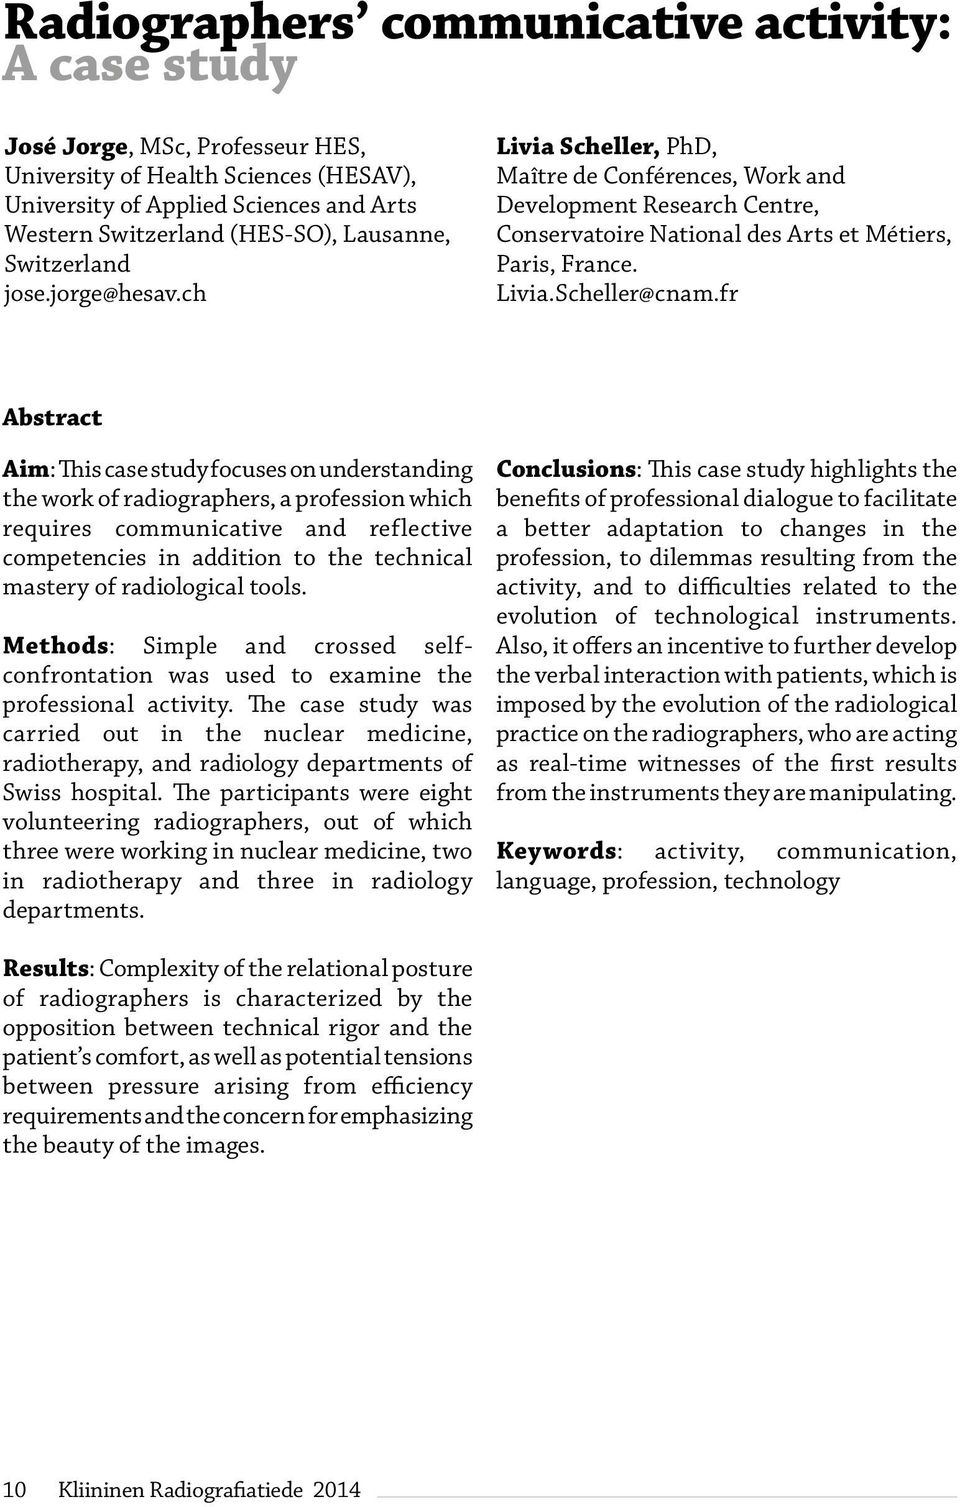 fr Abstract Aim: This case study focuses on understanding the work of radiographers, a profession which requires communicative and reflective competencies in addition to the technical mastery of